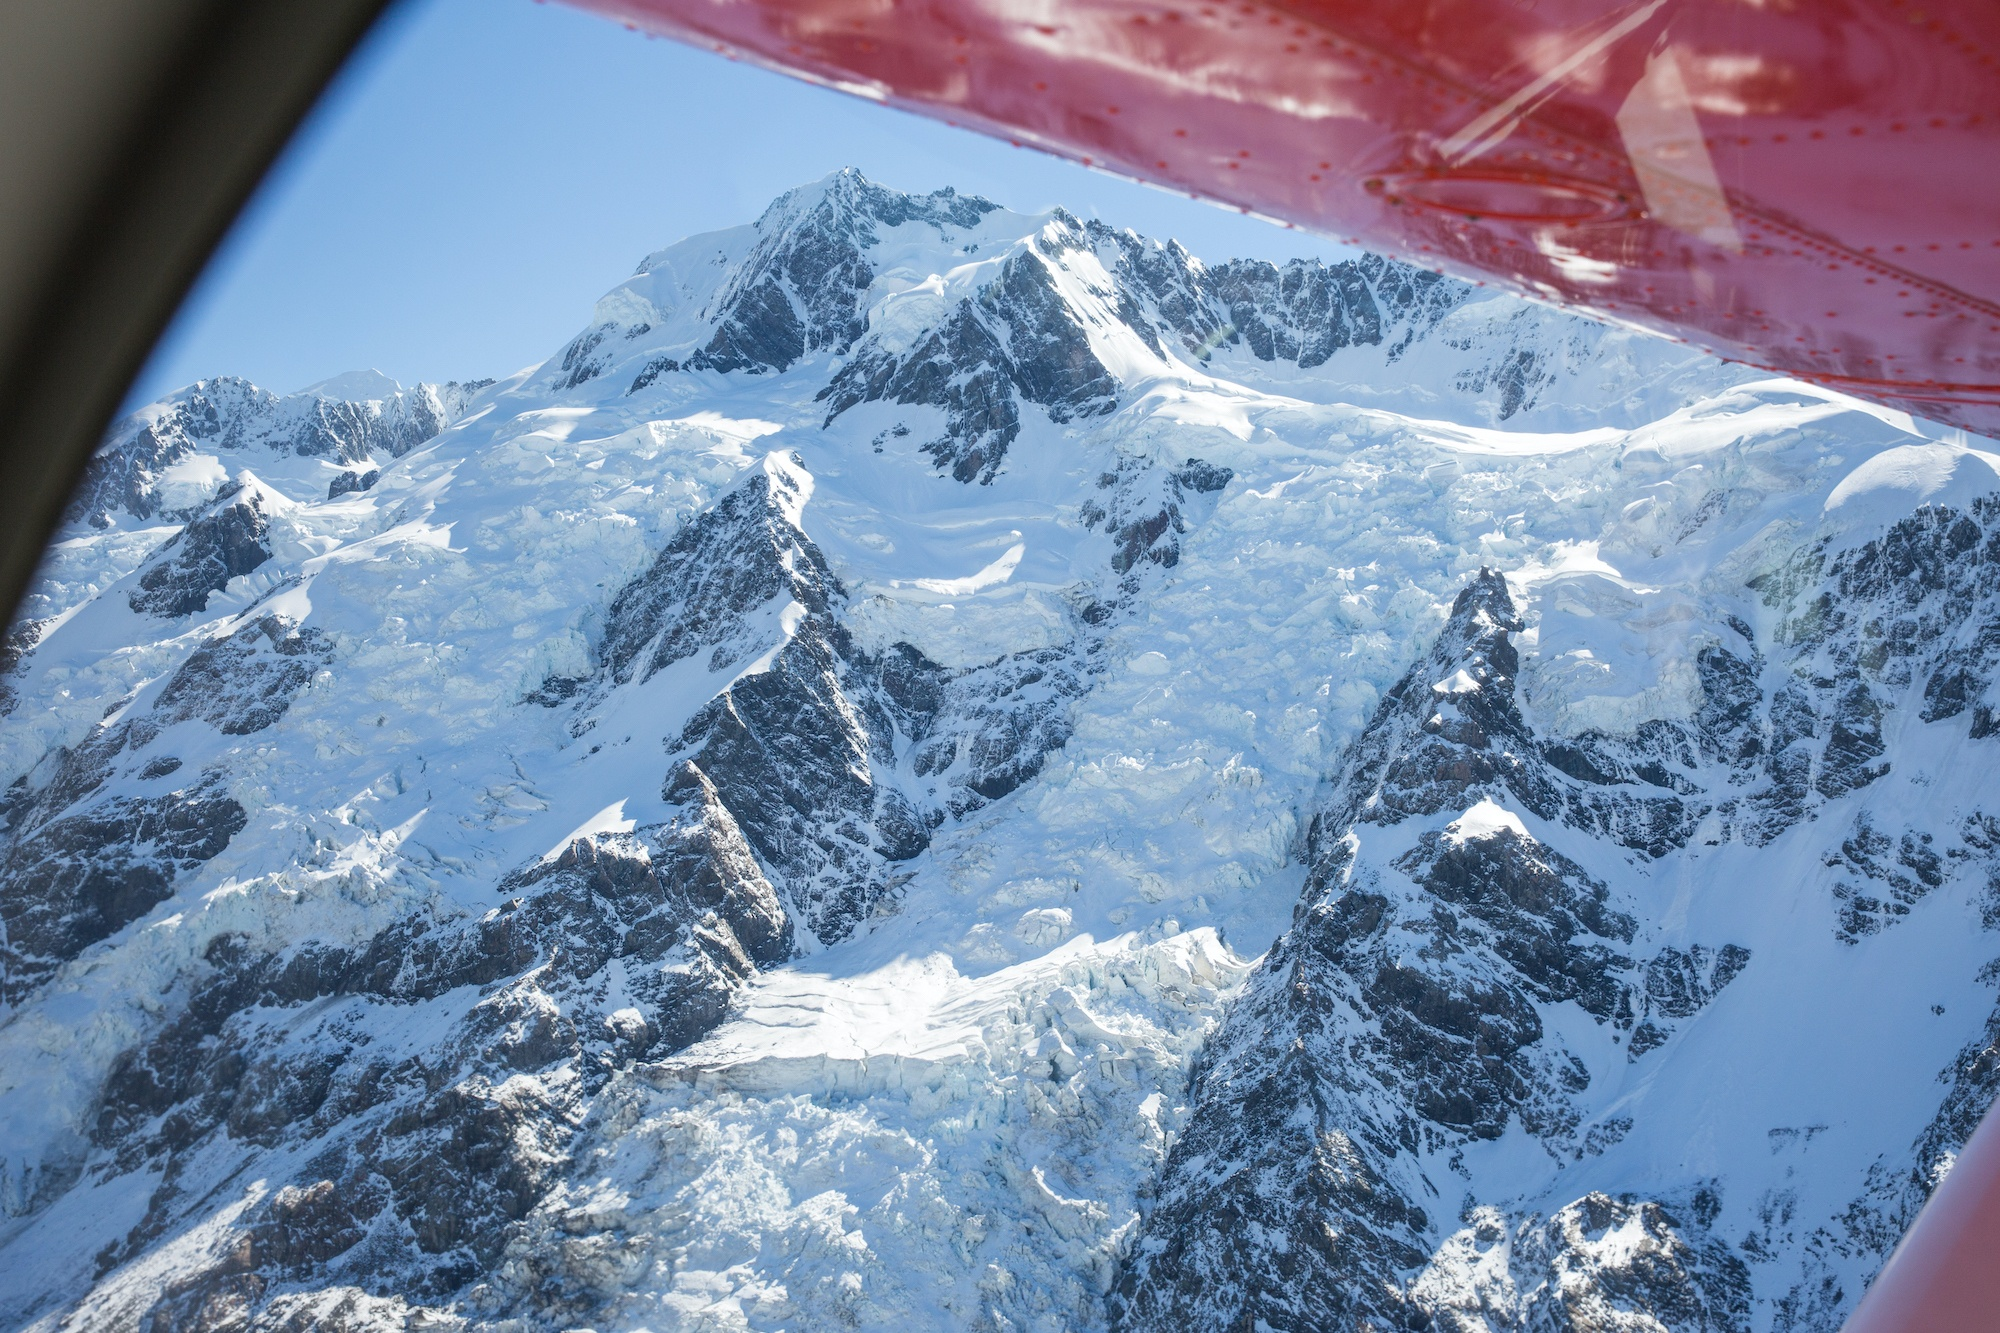 Anxiety versus rock climbing at Mt. Cook – which will win?